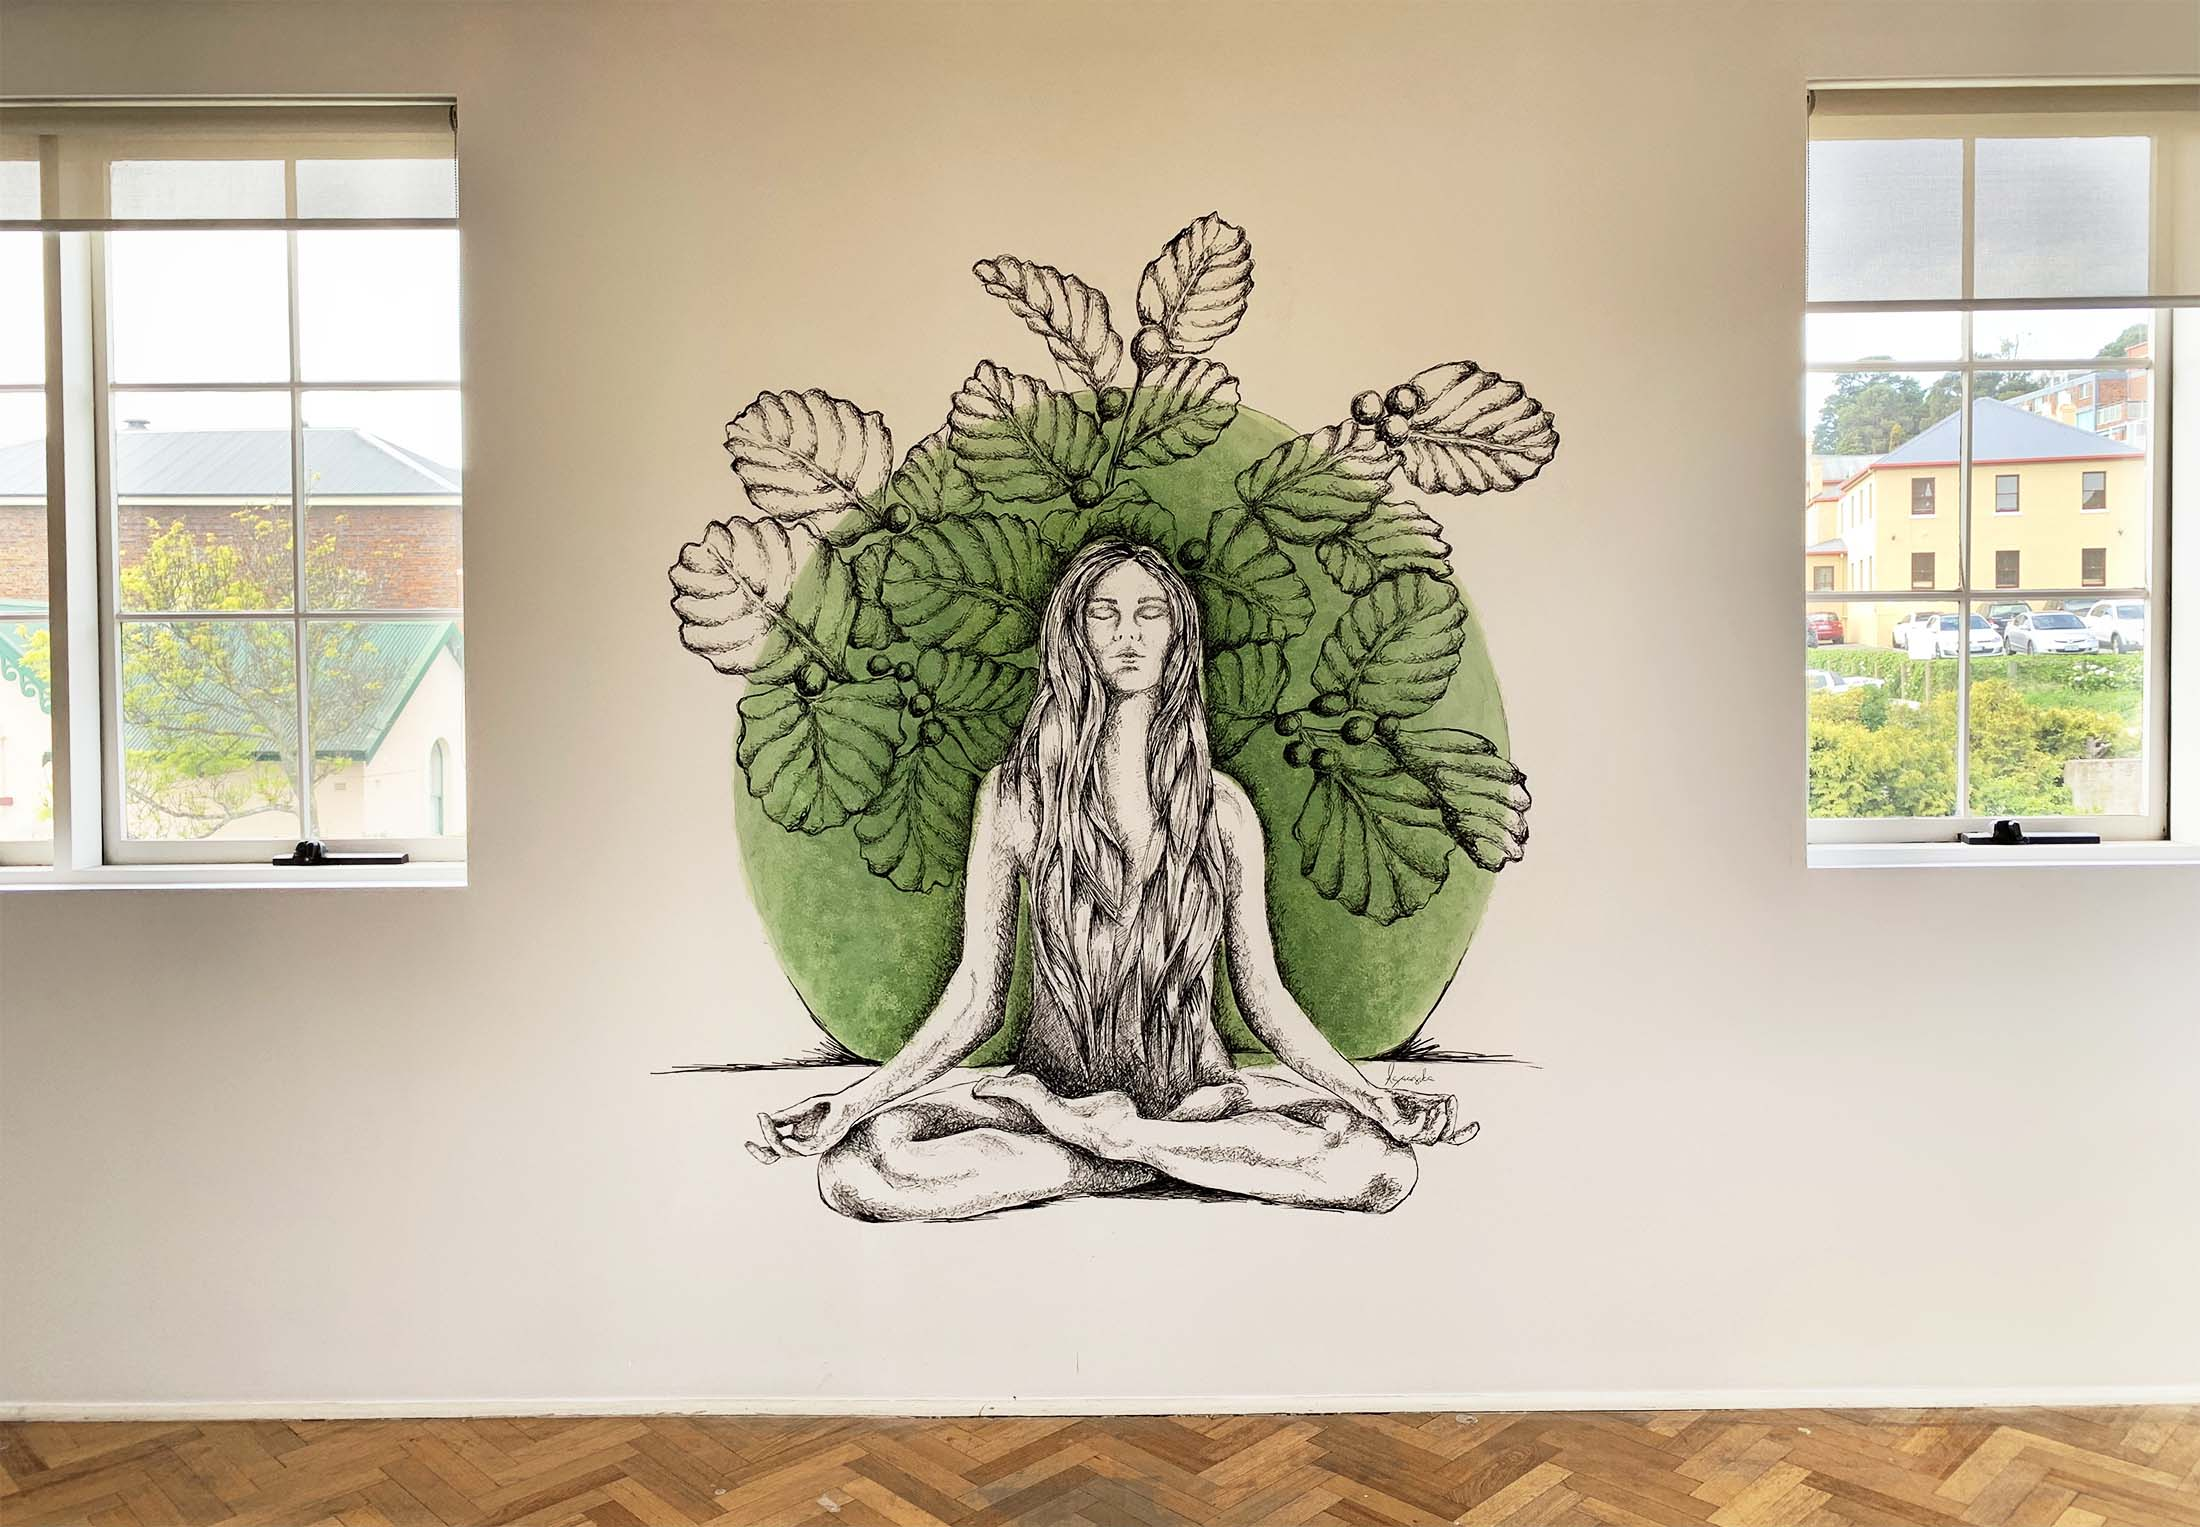 The Yoga Loft, Launceston   The old Hot Body Yoga has a new branding and some special artwork in the studio.